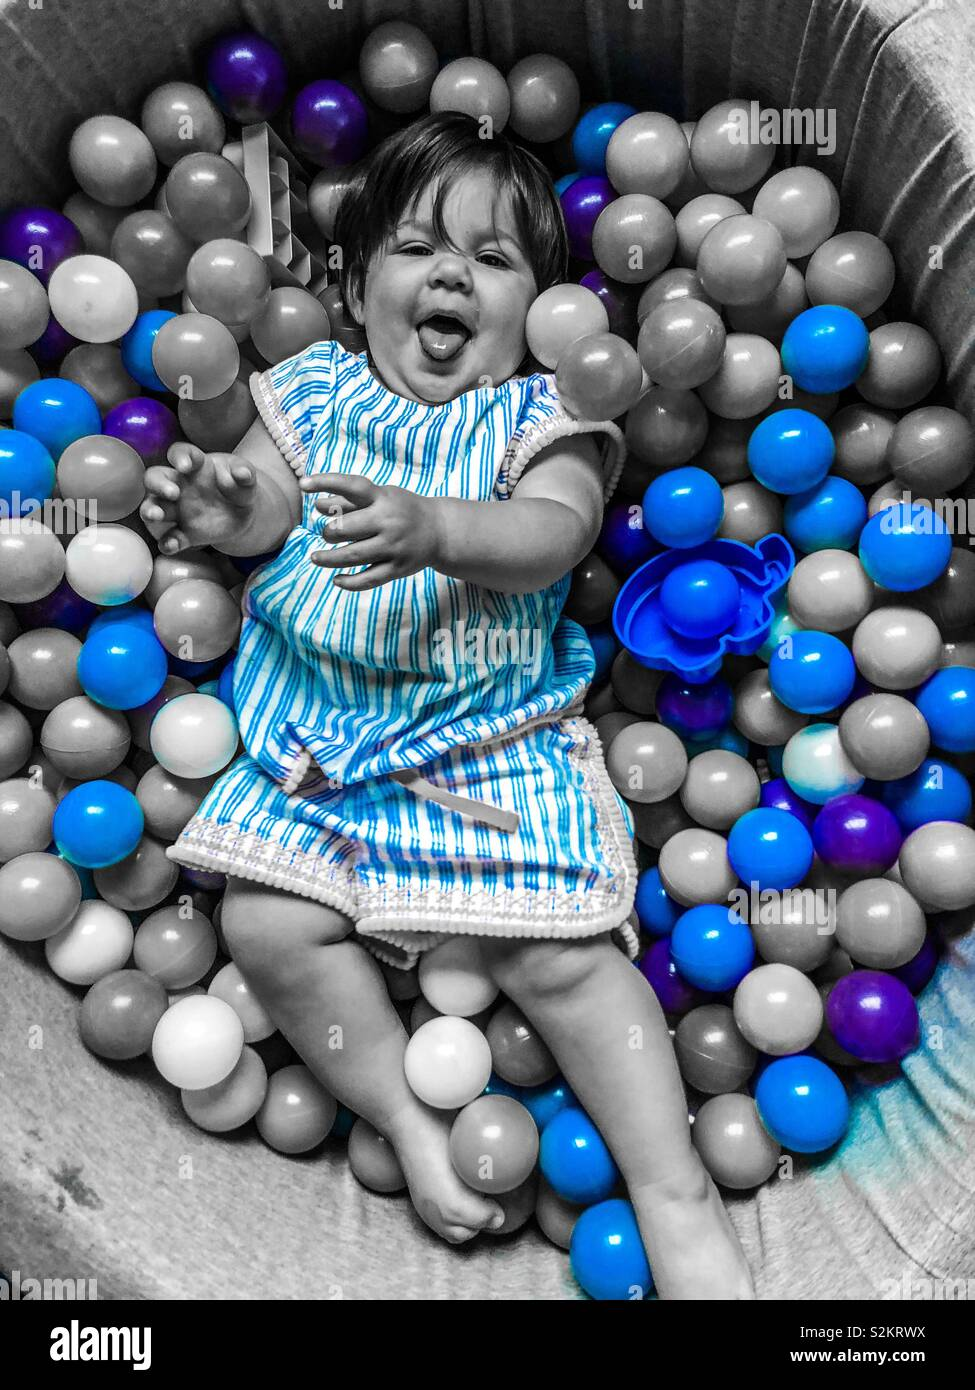 Baby in ball pit - Stock Image